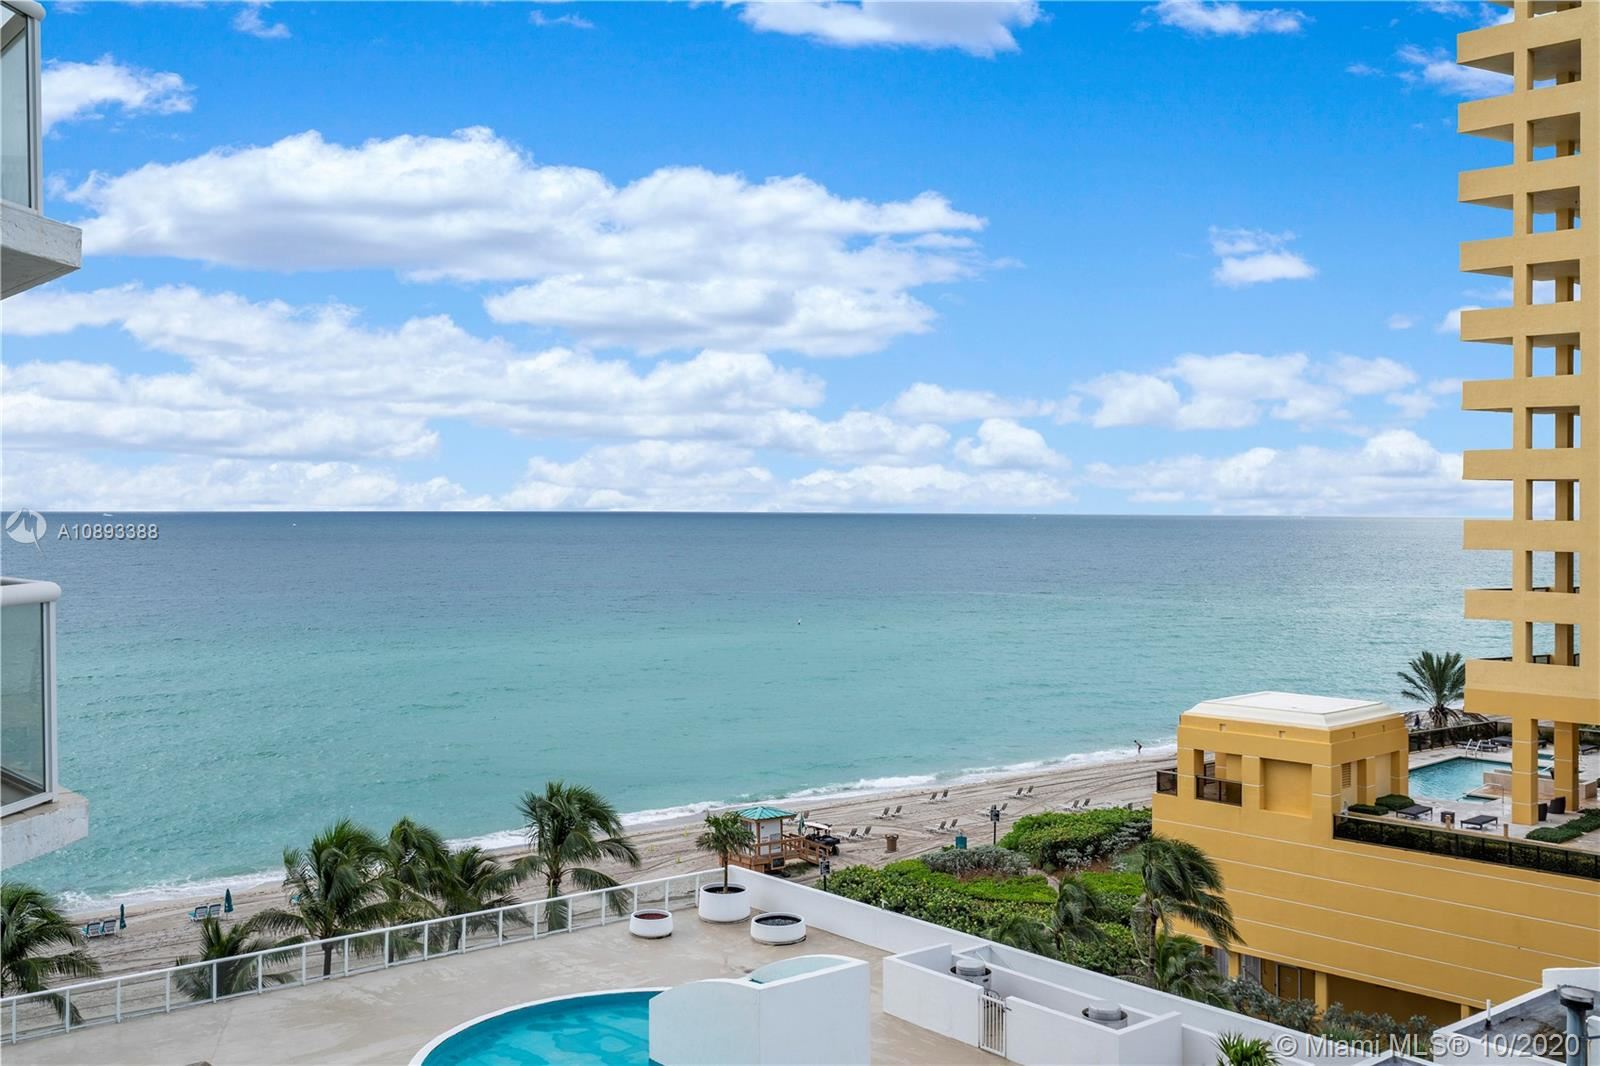 16425 Collins Ave #712, Sunny Isles, FL 33160 - #: A10893388